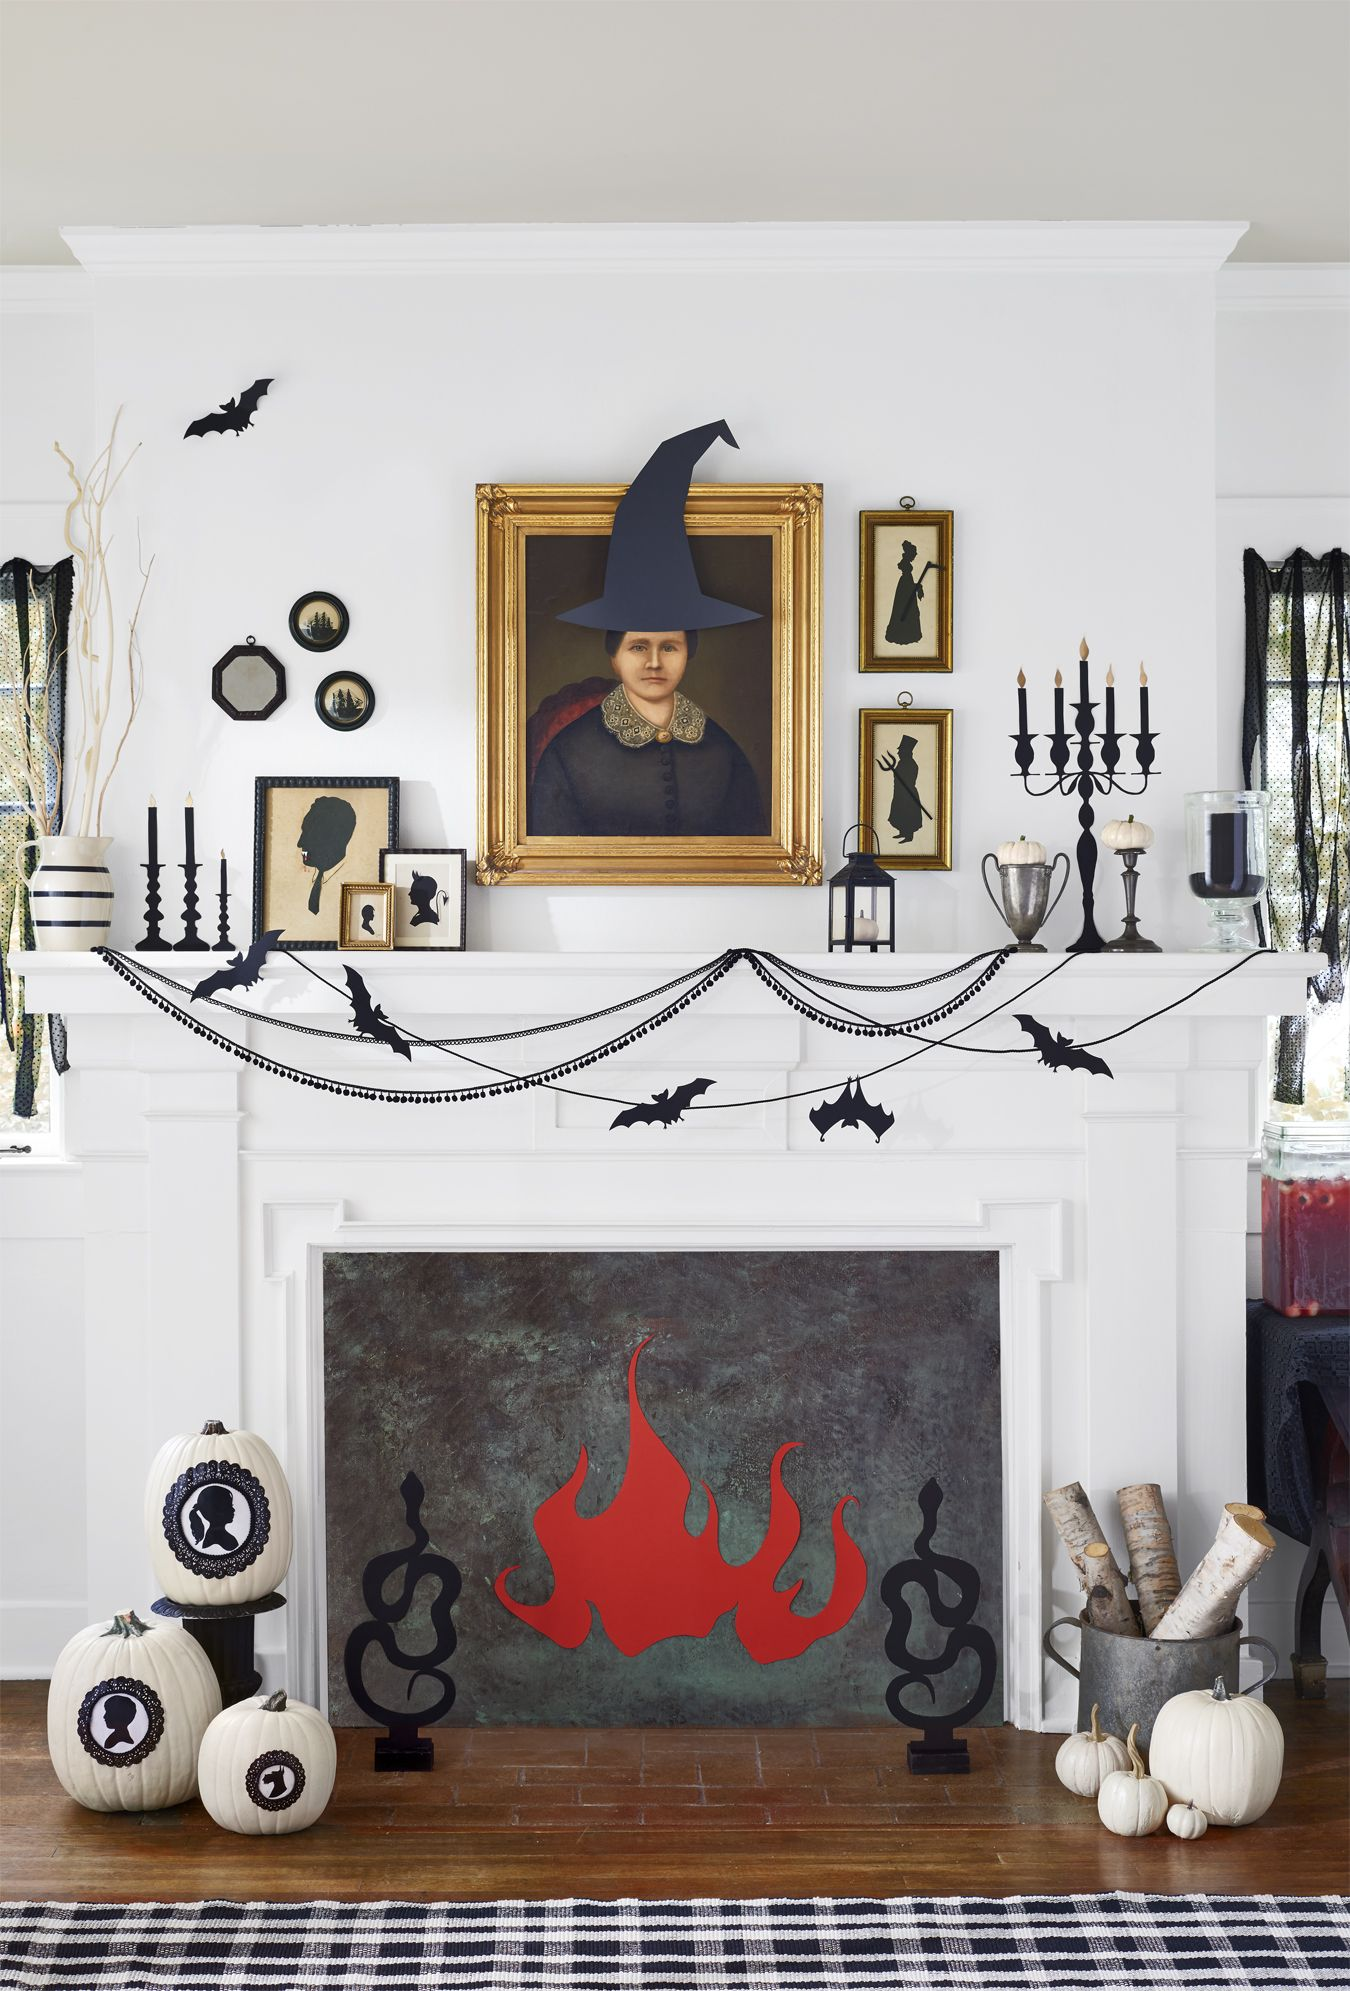 45 Fun and Festive Halloween Party Decoration Ideas | Pinterest ...